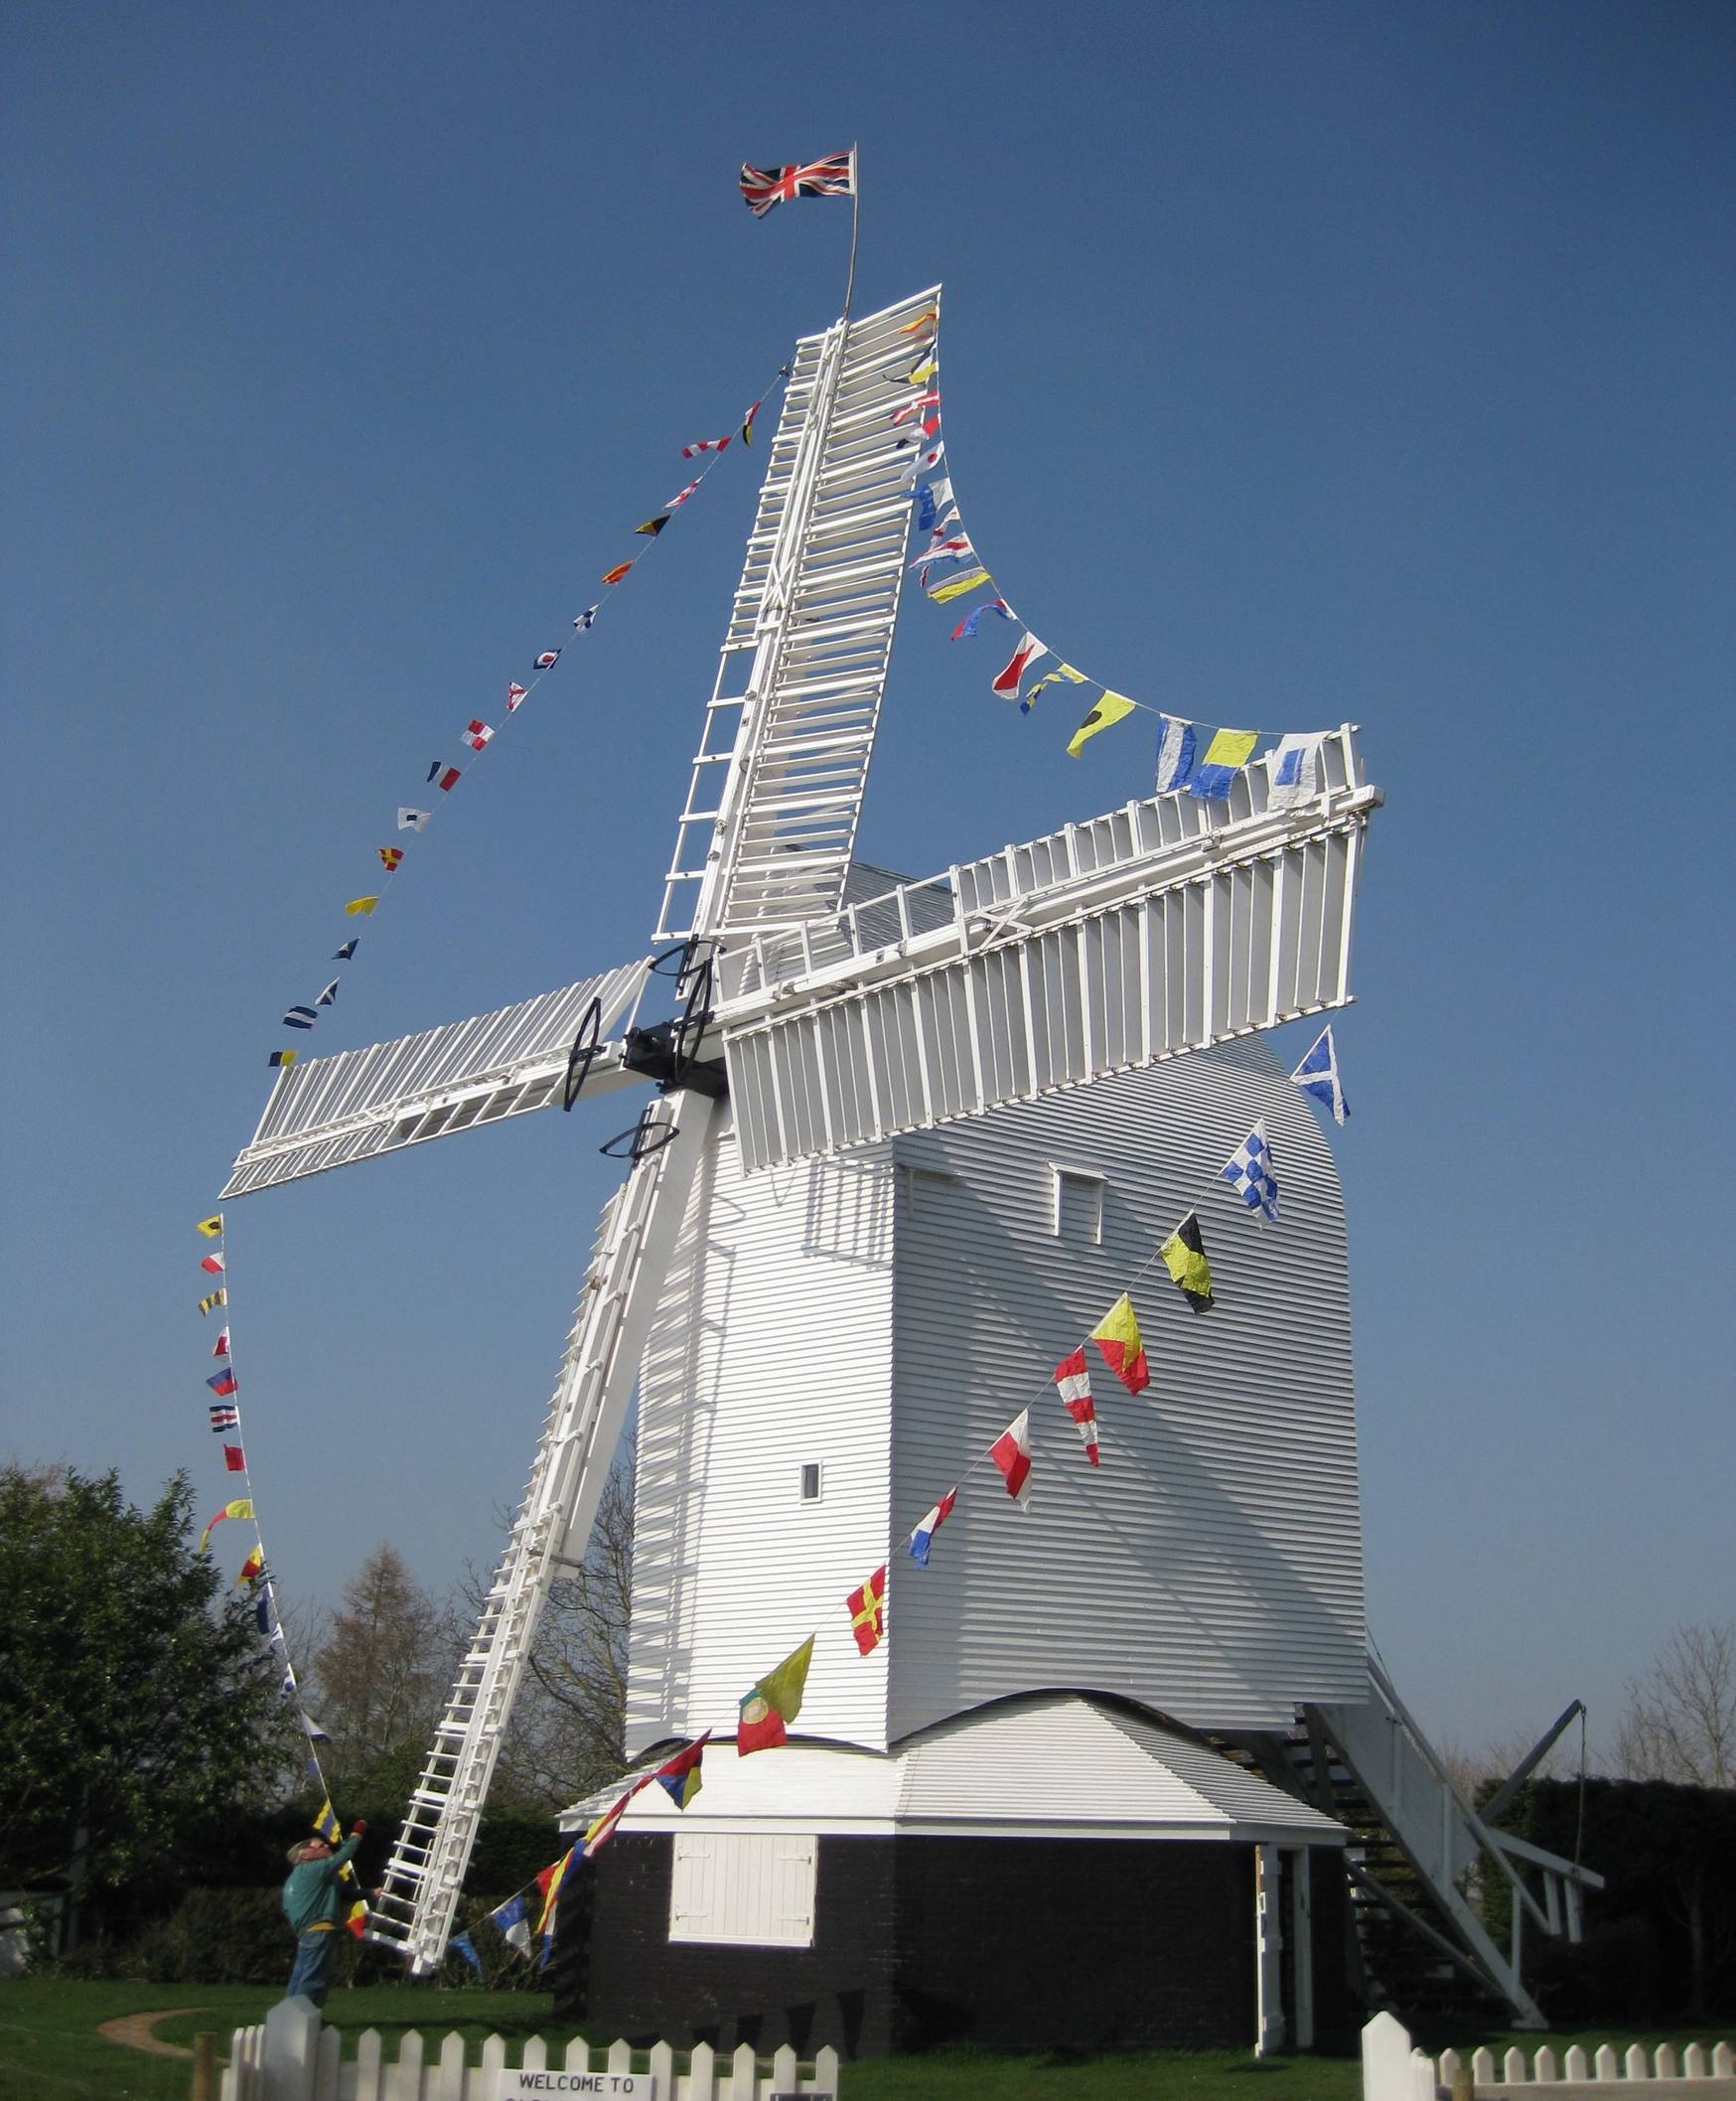 paint for working windmills